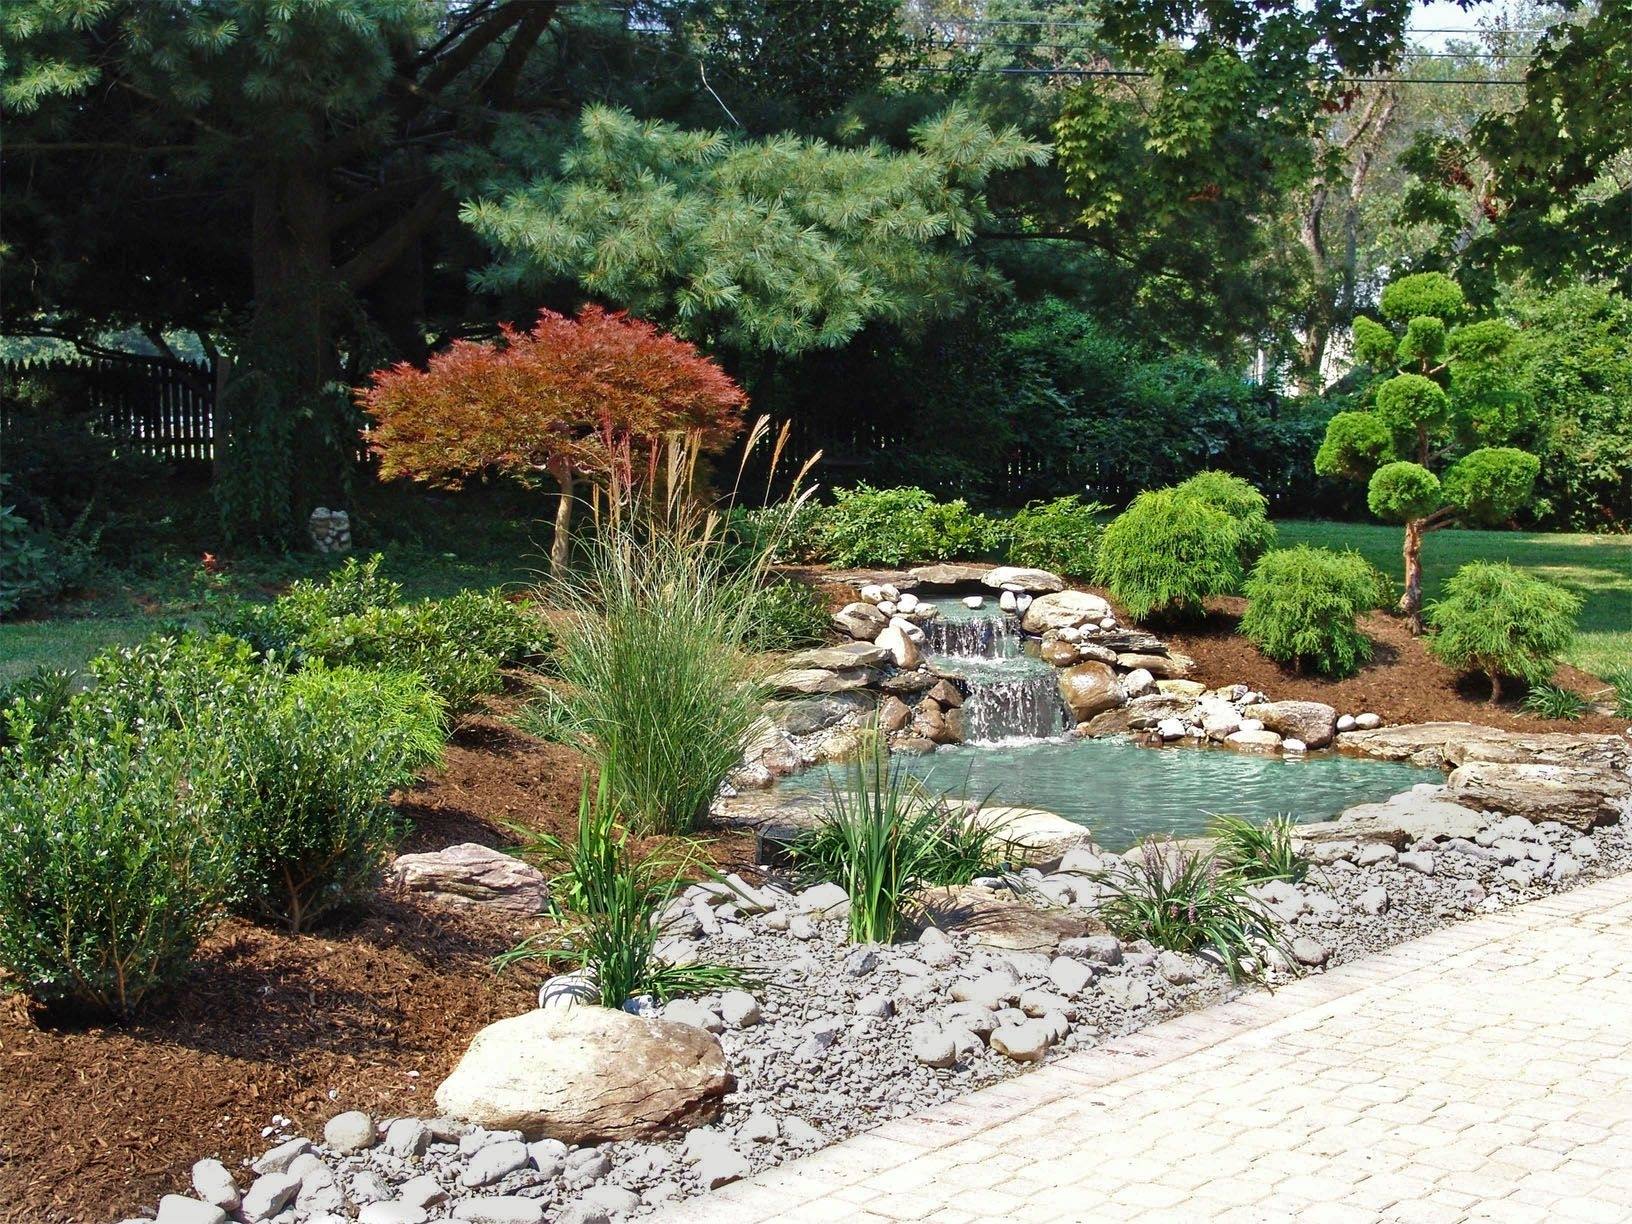 Japanese Garden. Landscape Design With Waterfall And Pond By Lee's inside Zen Garden Design Sydney